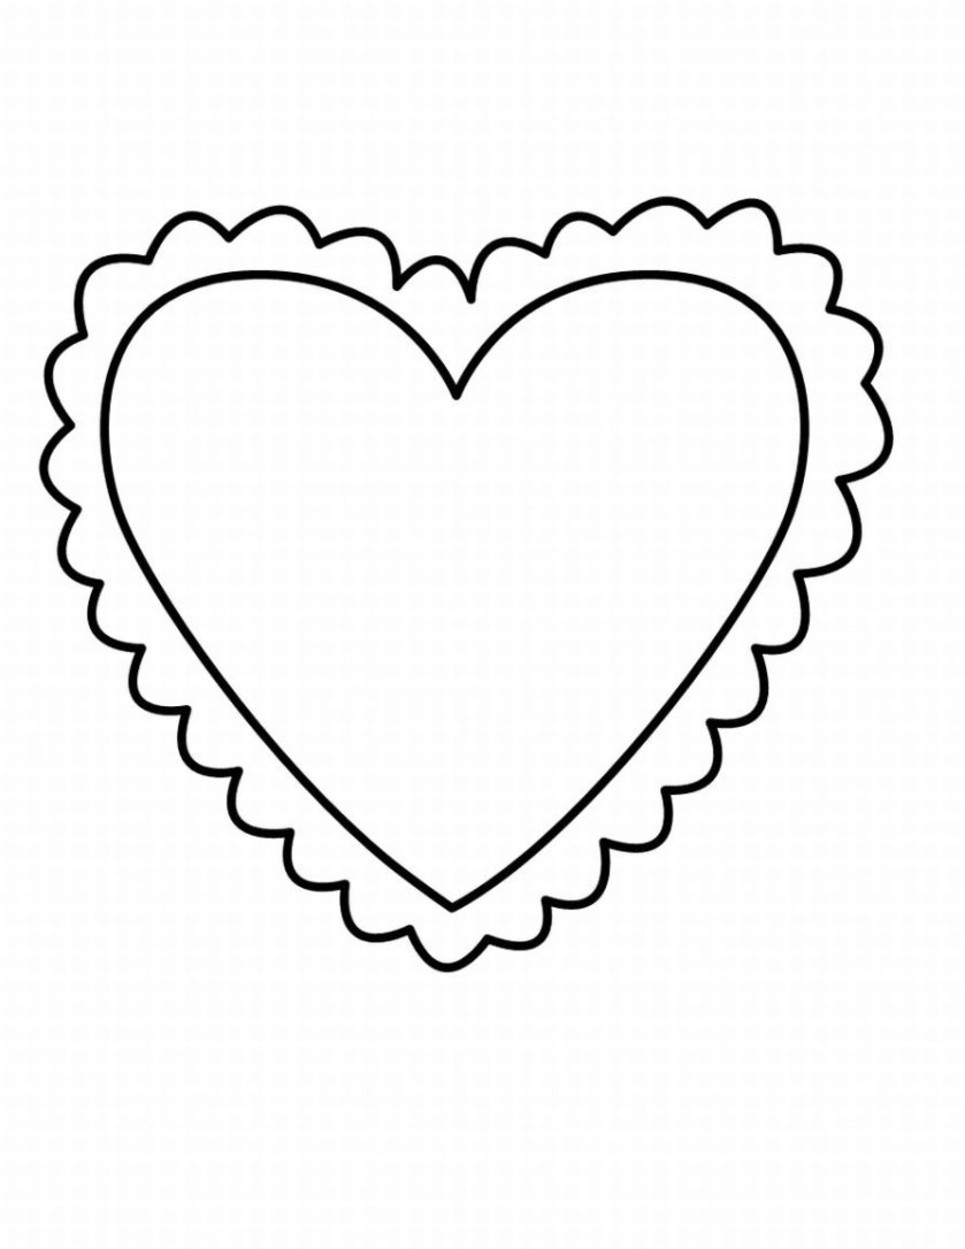 valentines hearts coloring pages free printable heart coloring pages for kids pages hearts valentines coloring